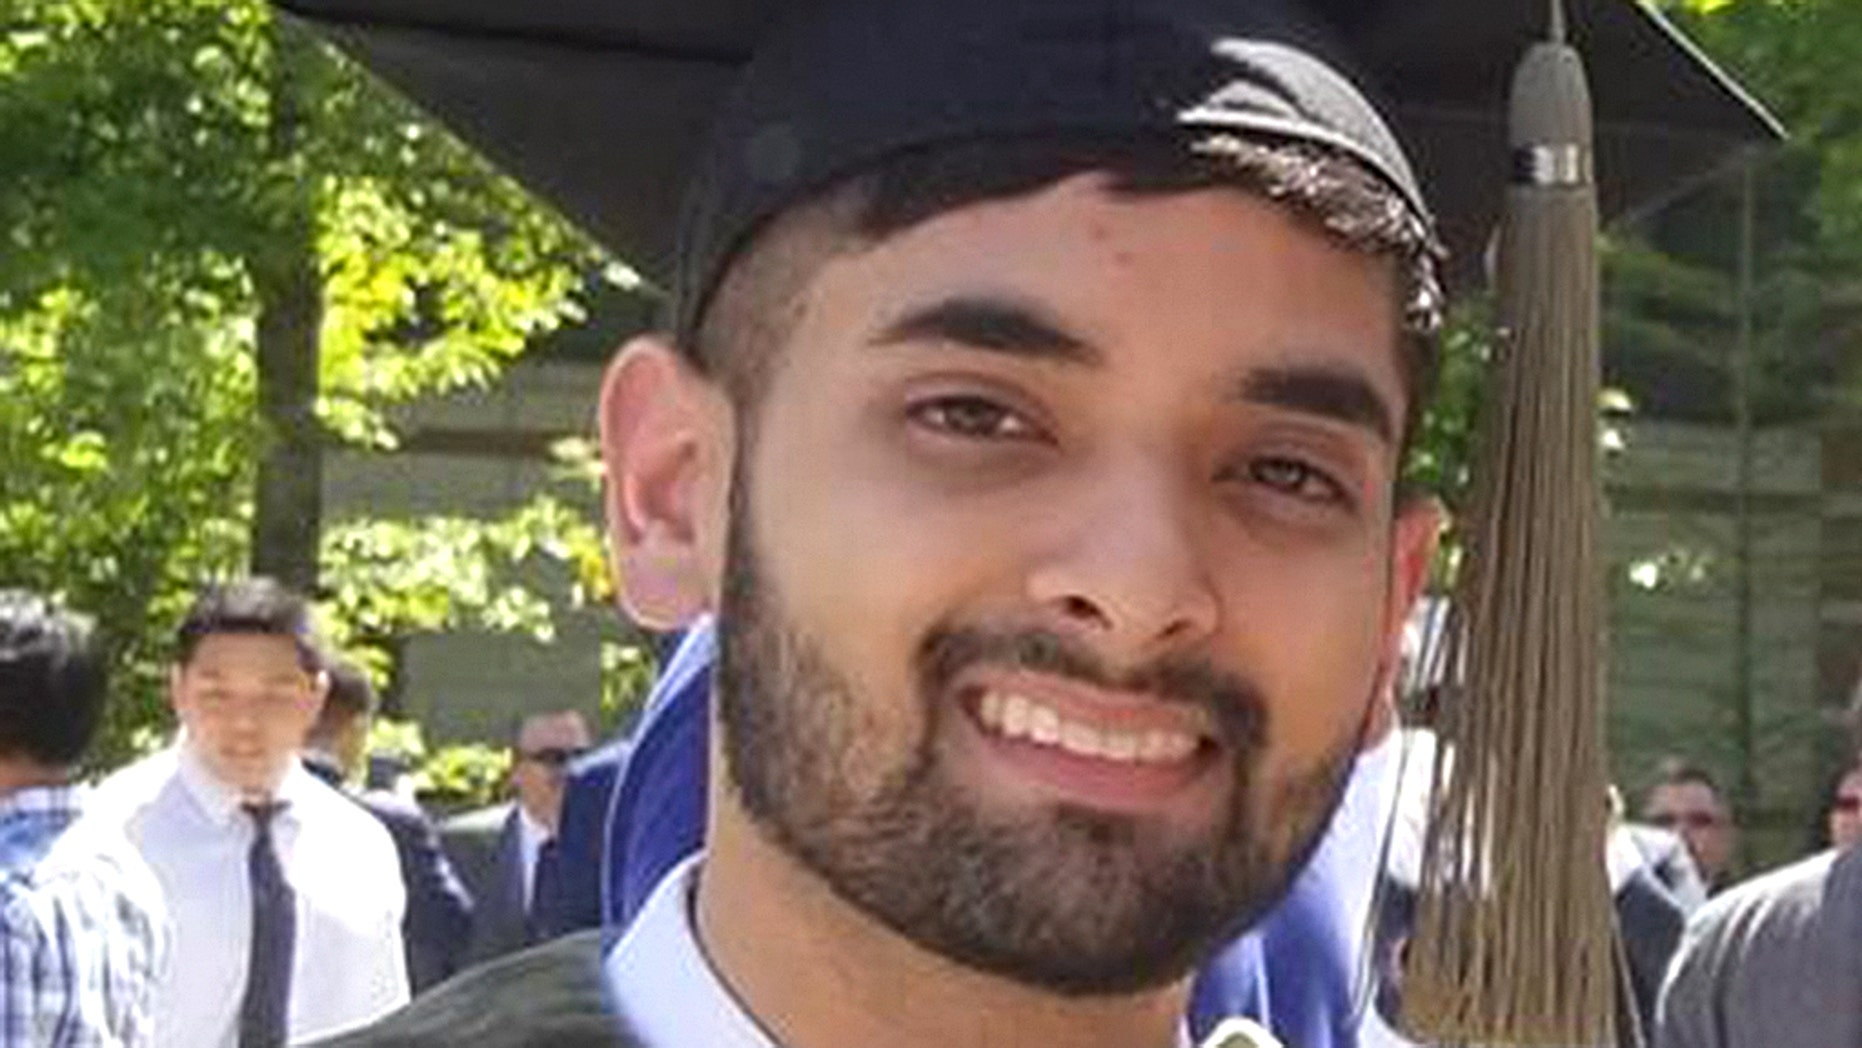 The body pulled from Lake Carlton was identified as Alvin Ahmed, 25, who police said staged his suicide to appear like he was murdered.